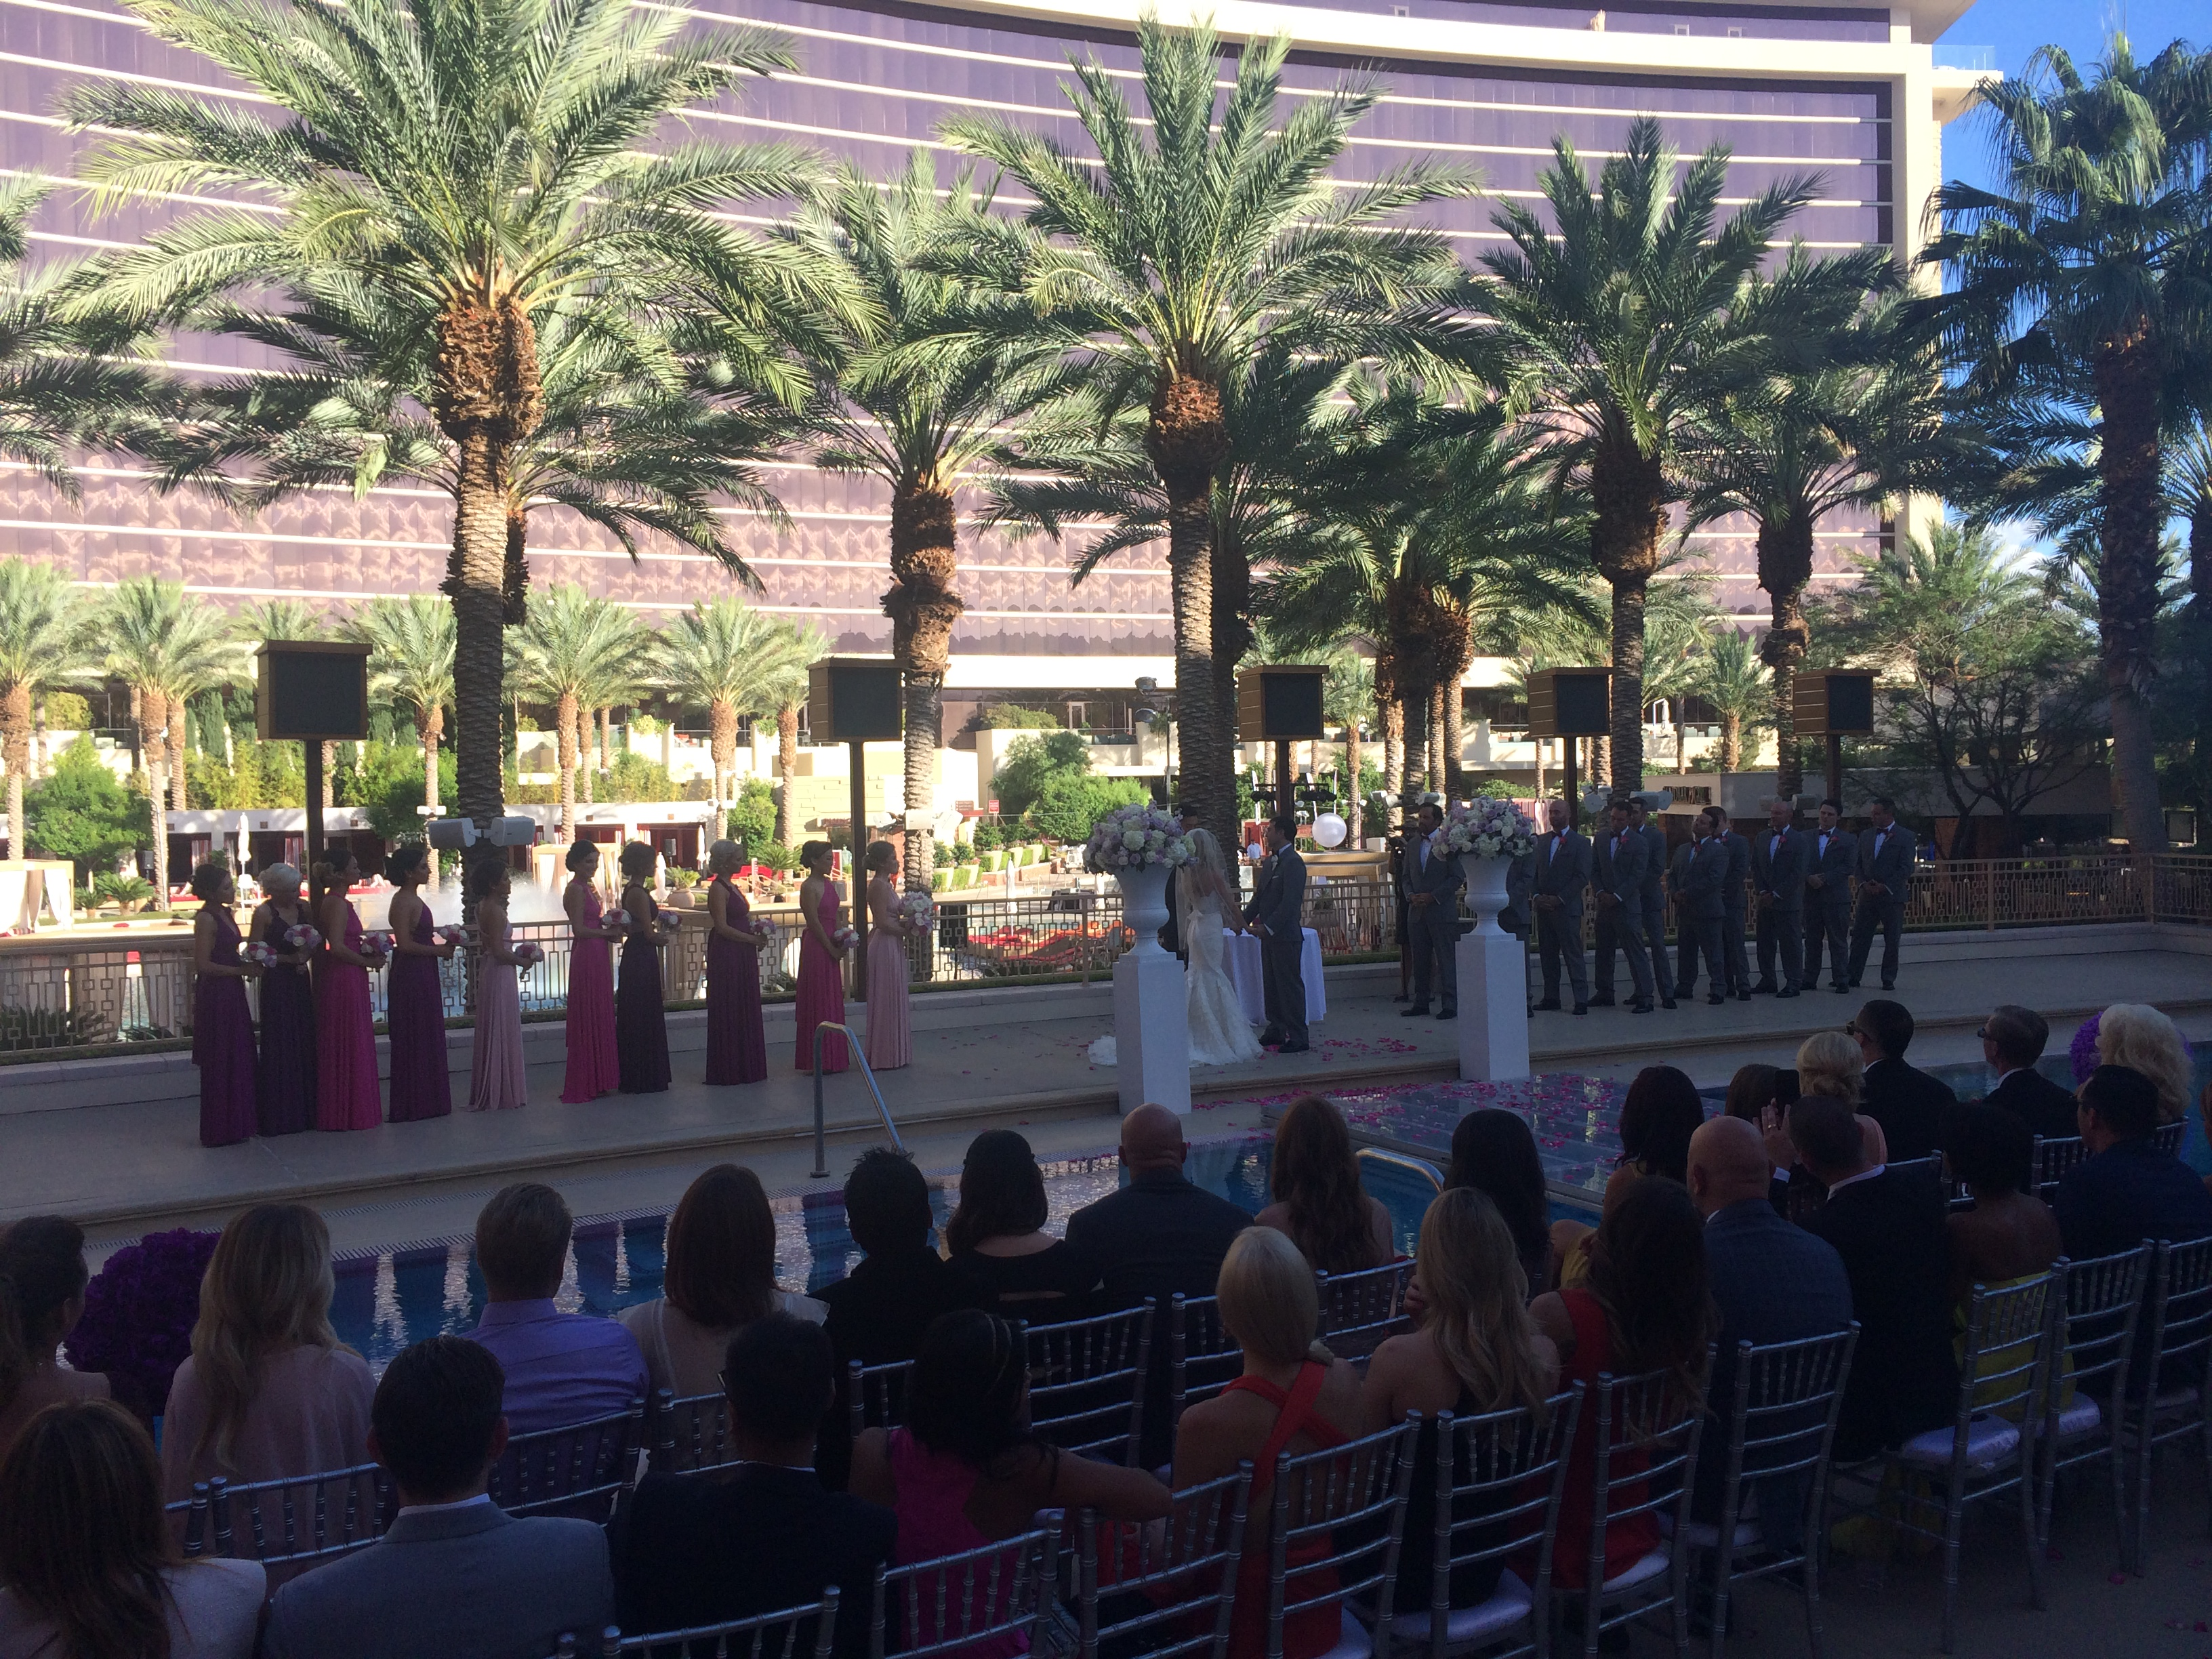 Red rock casino wedding